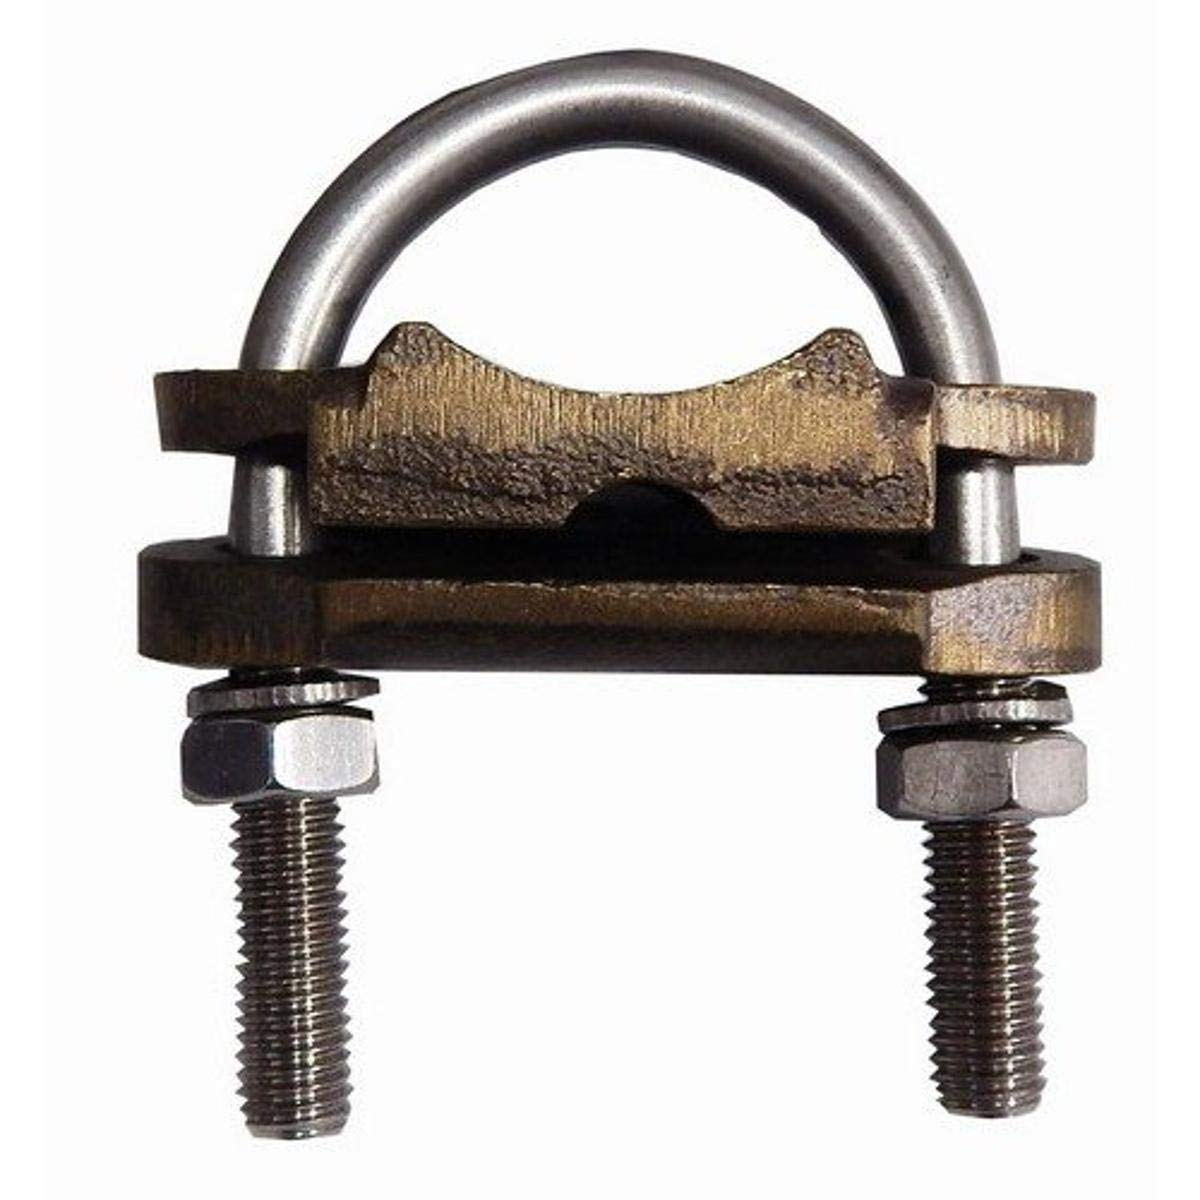 Morris 91735 Morris Products 91735 U Bolt Ground Clamp, Copper, 1 Conductor, #4 - 2/0 Wire Range, 1/2 Pipe Size